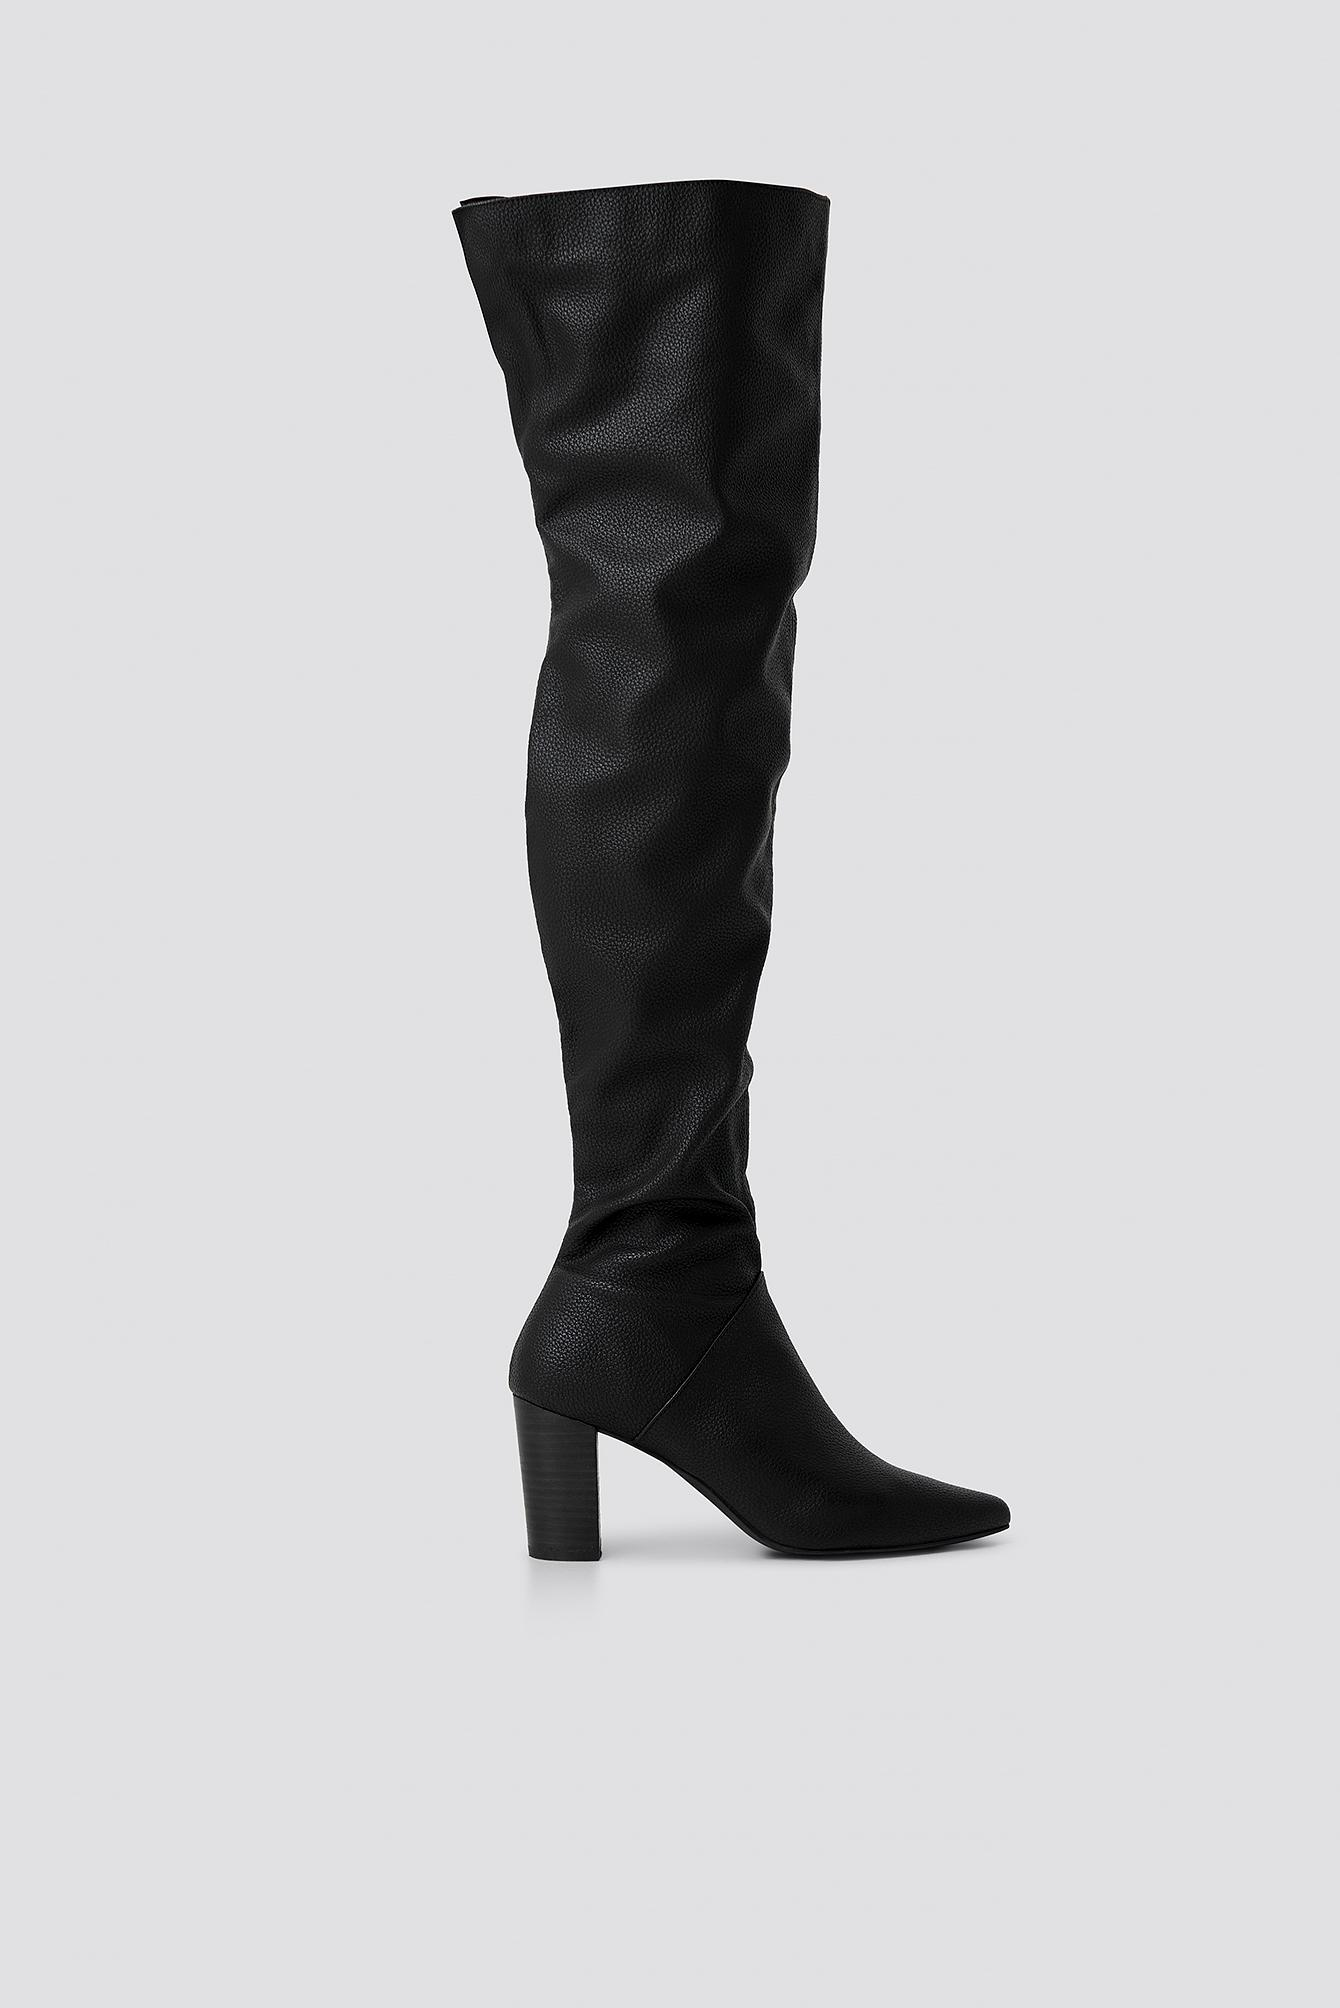 huge selection of cfd1d 64631 NA-KD - Classic Overknee Boots Black - Lyst. View fullscreen